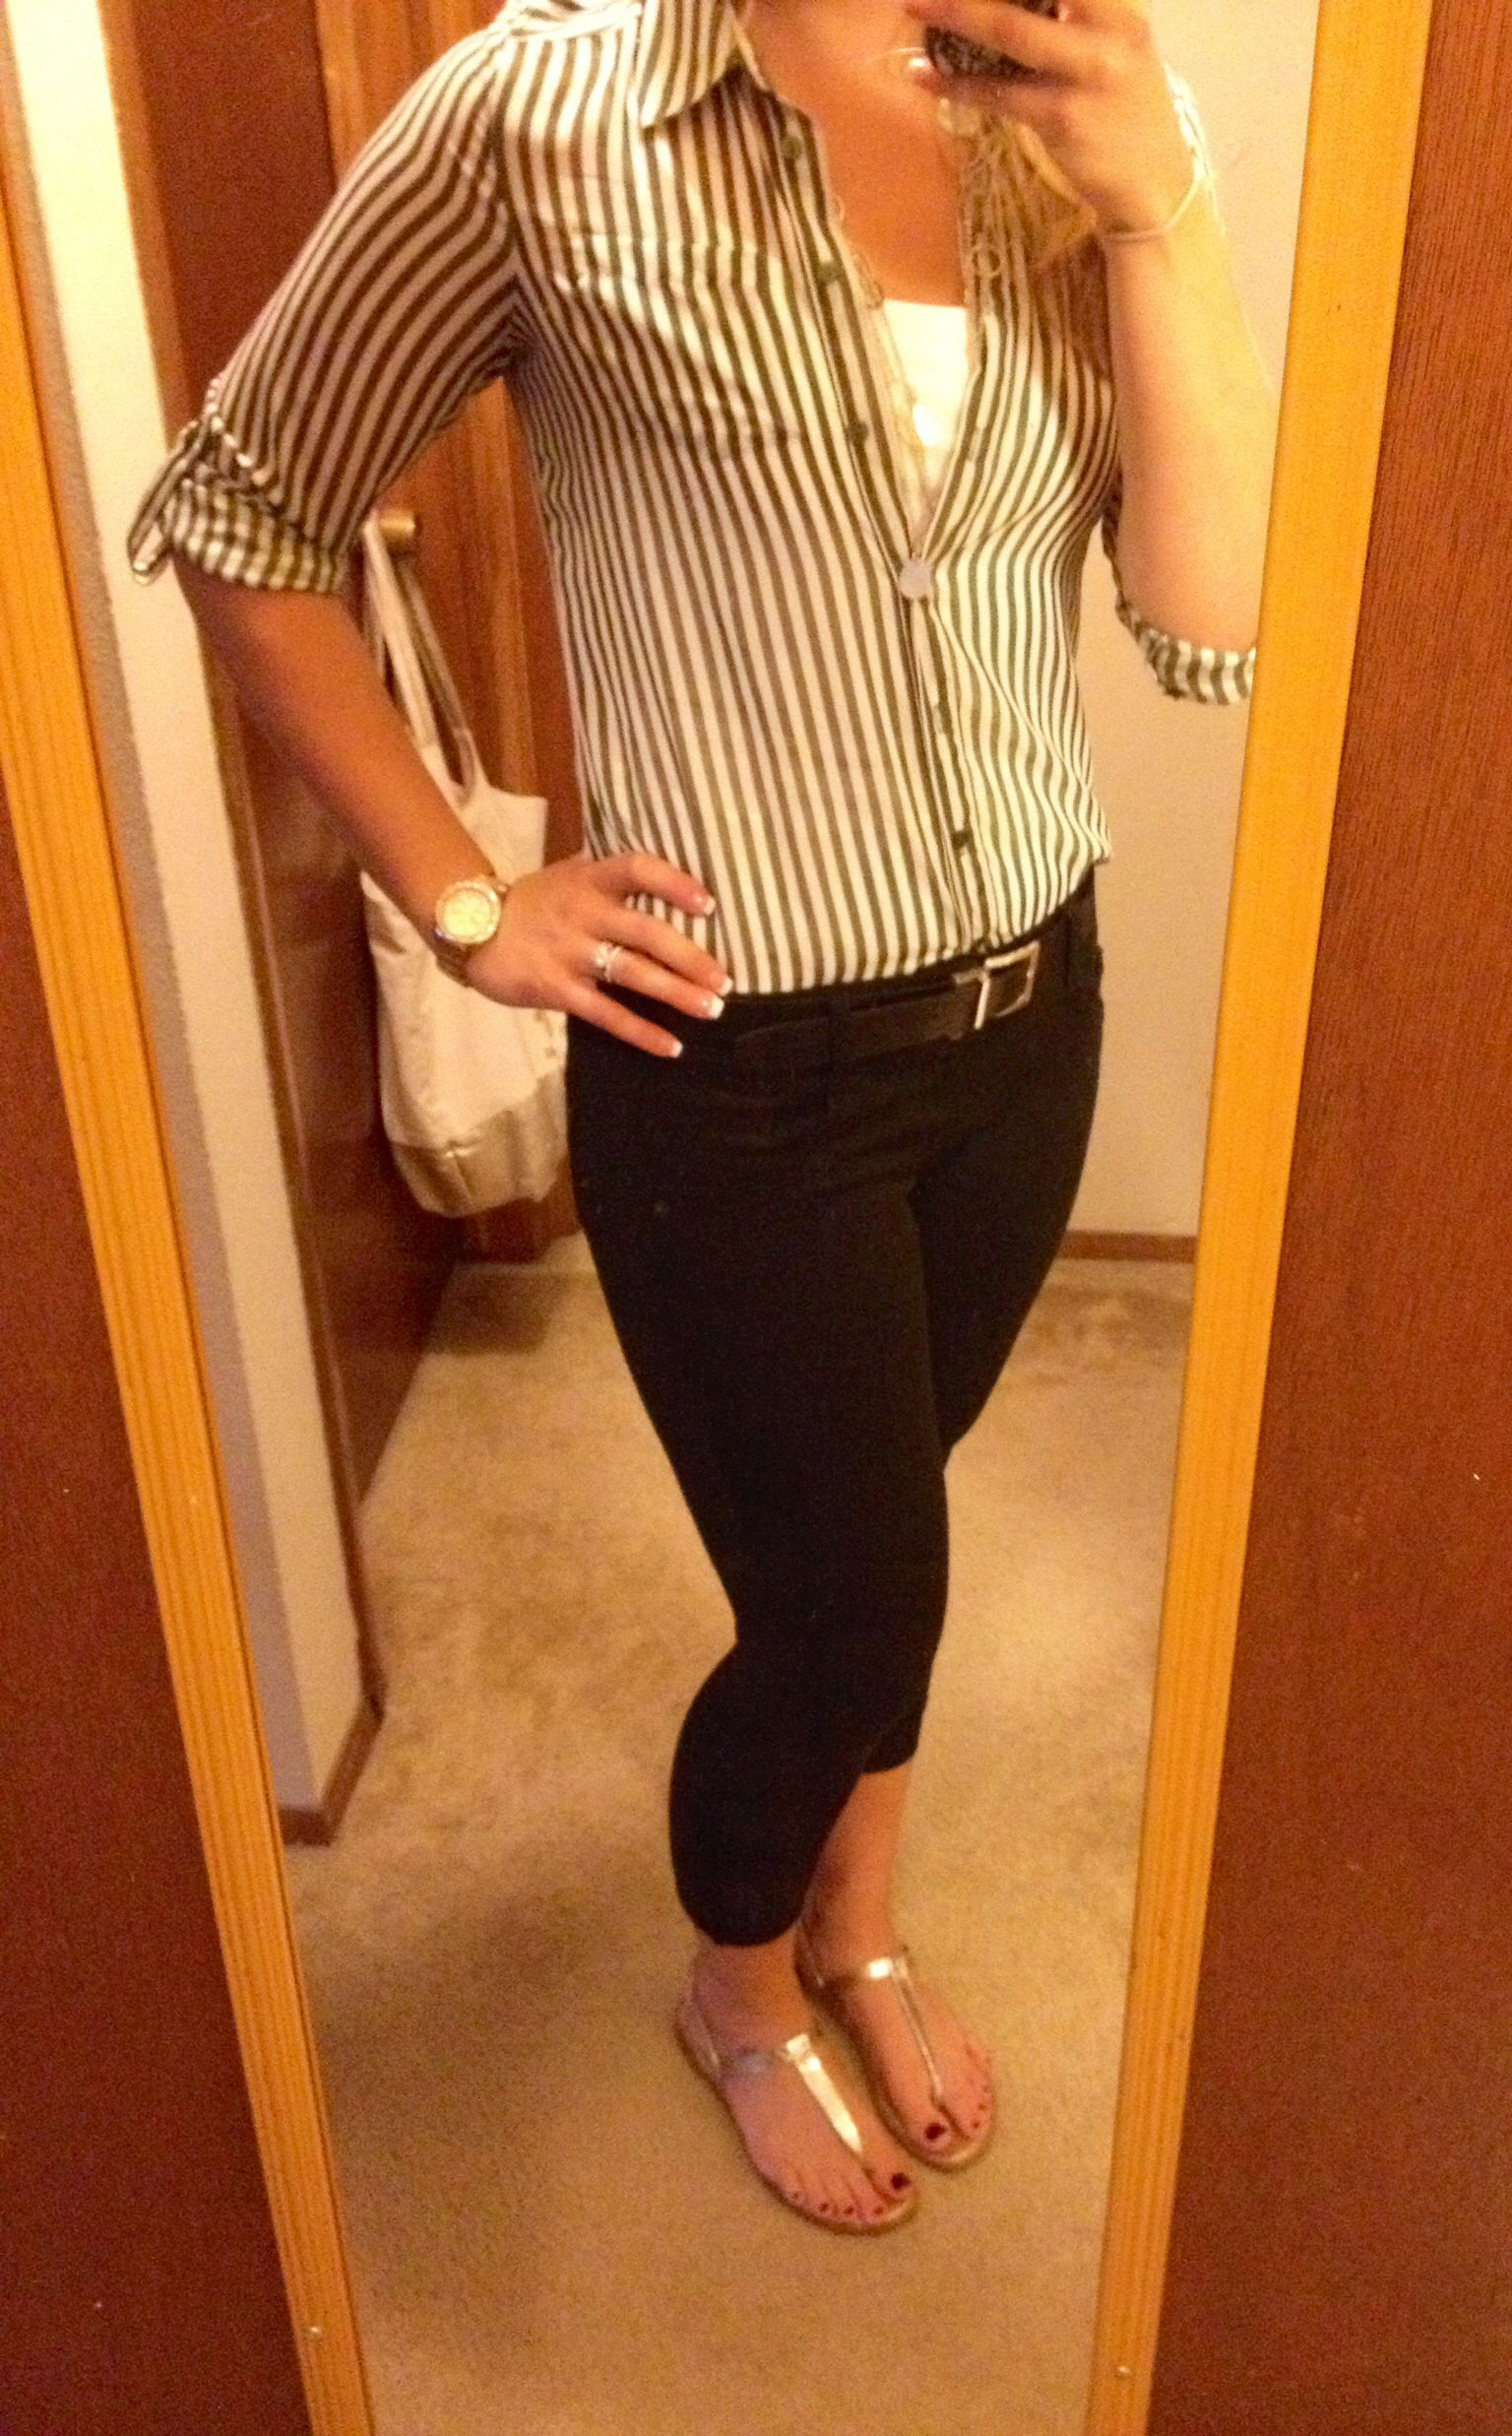 d838bf15030 Business Casual Work Outfit  28 Pants and Shirt- Kohls Shoes- Target Watch-  Fossil Necklace- Charolette Russe